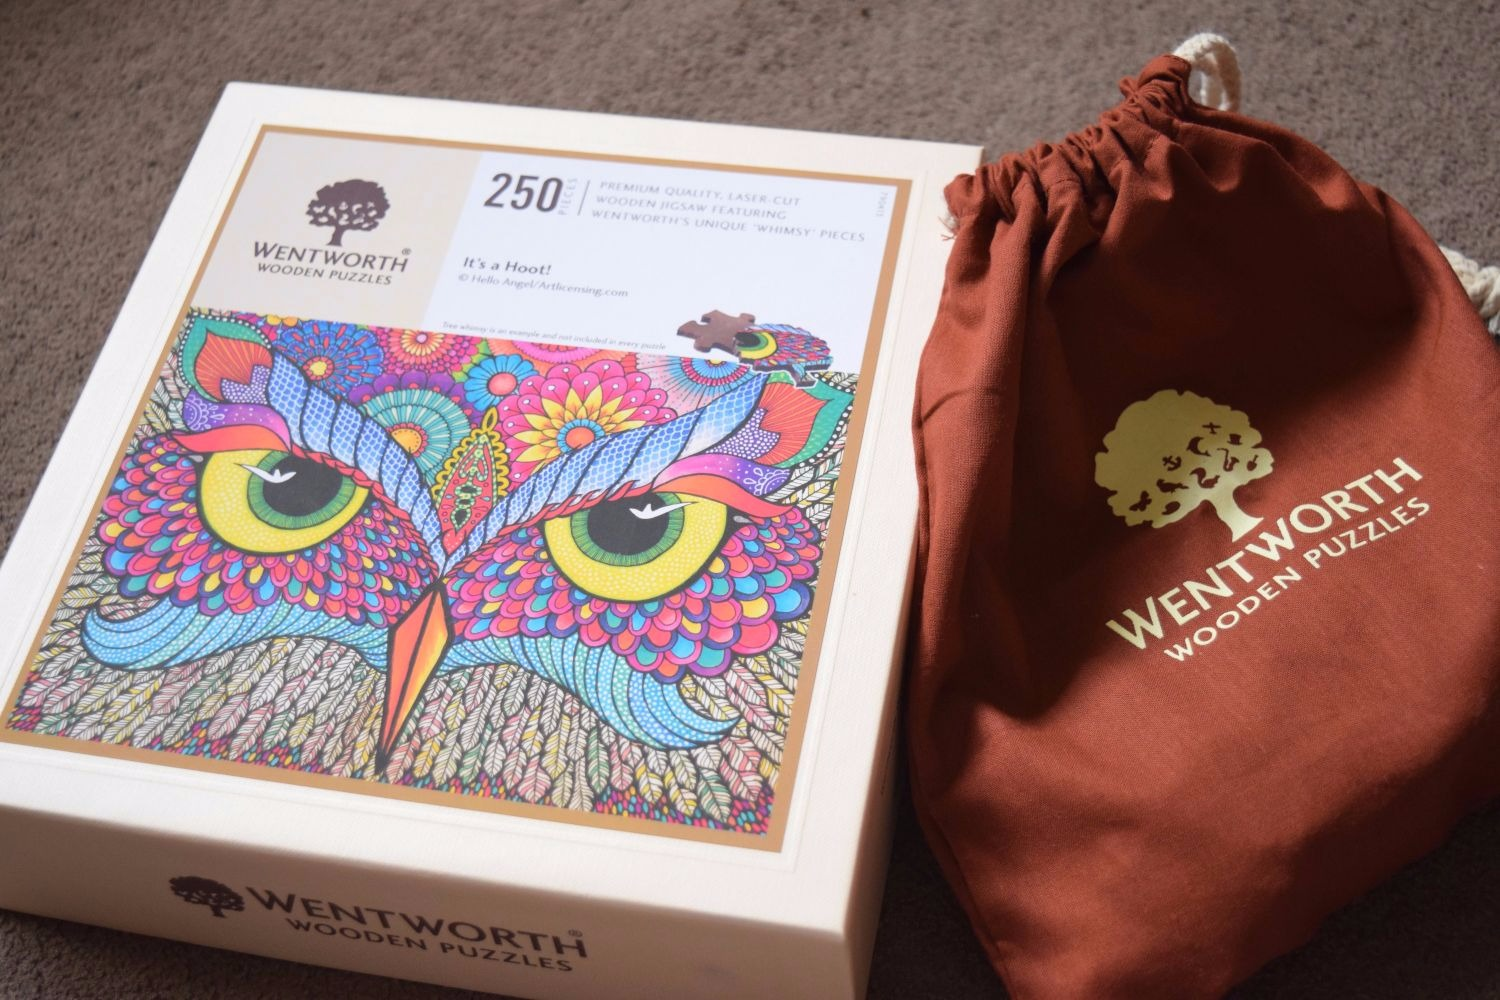 Wentworth Puzzle - It's a Hoot! - Owl Jigsaw review